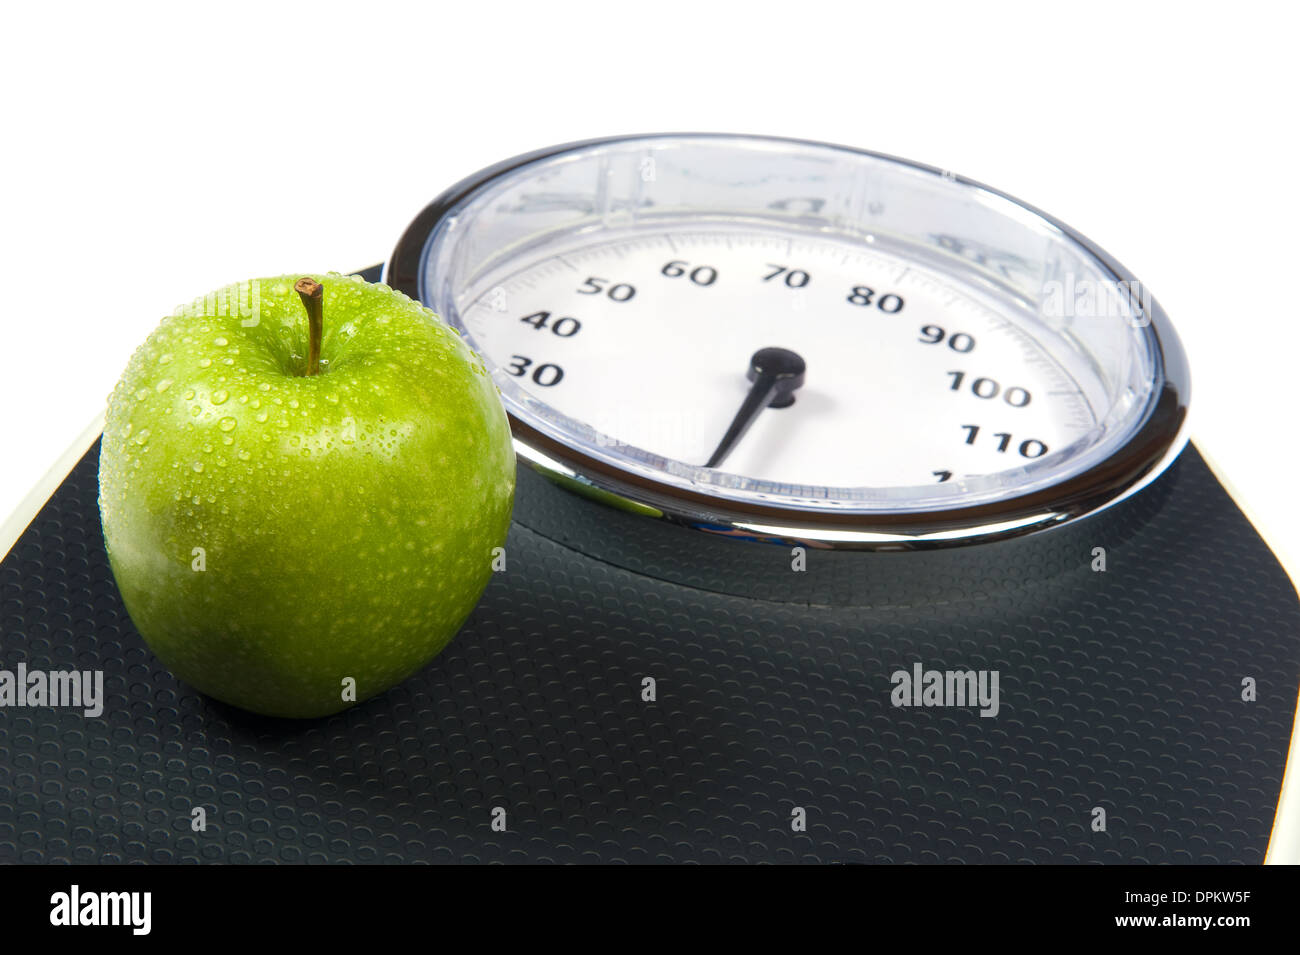 A weight scale with an apple - Stock Image